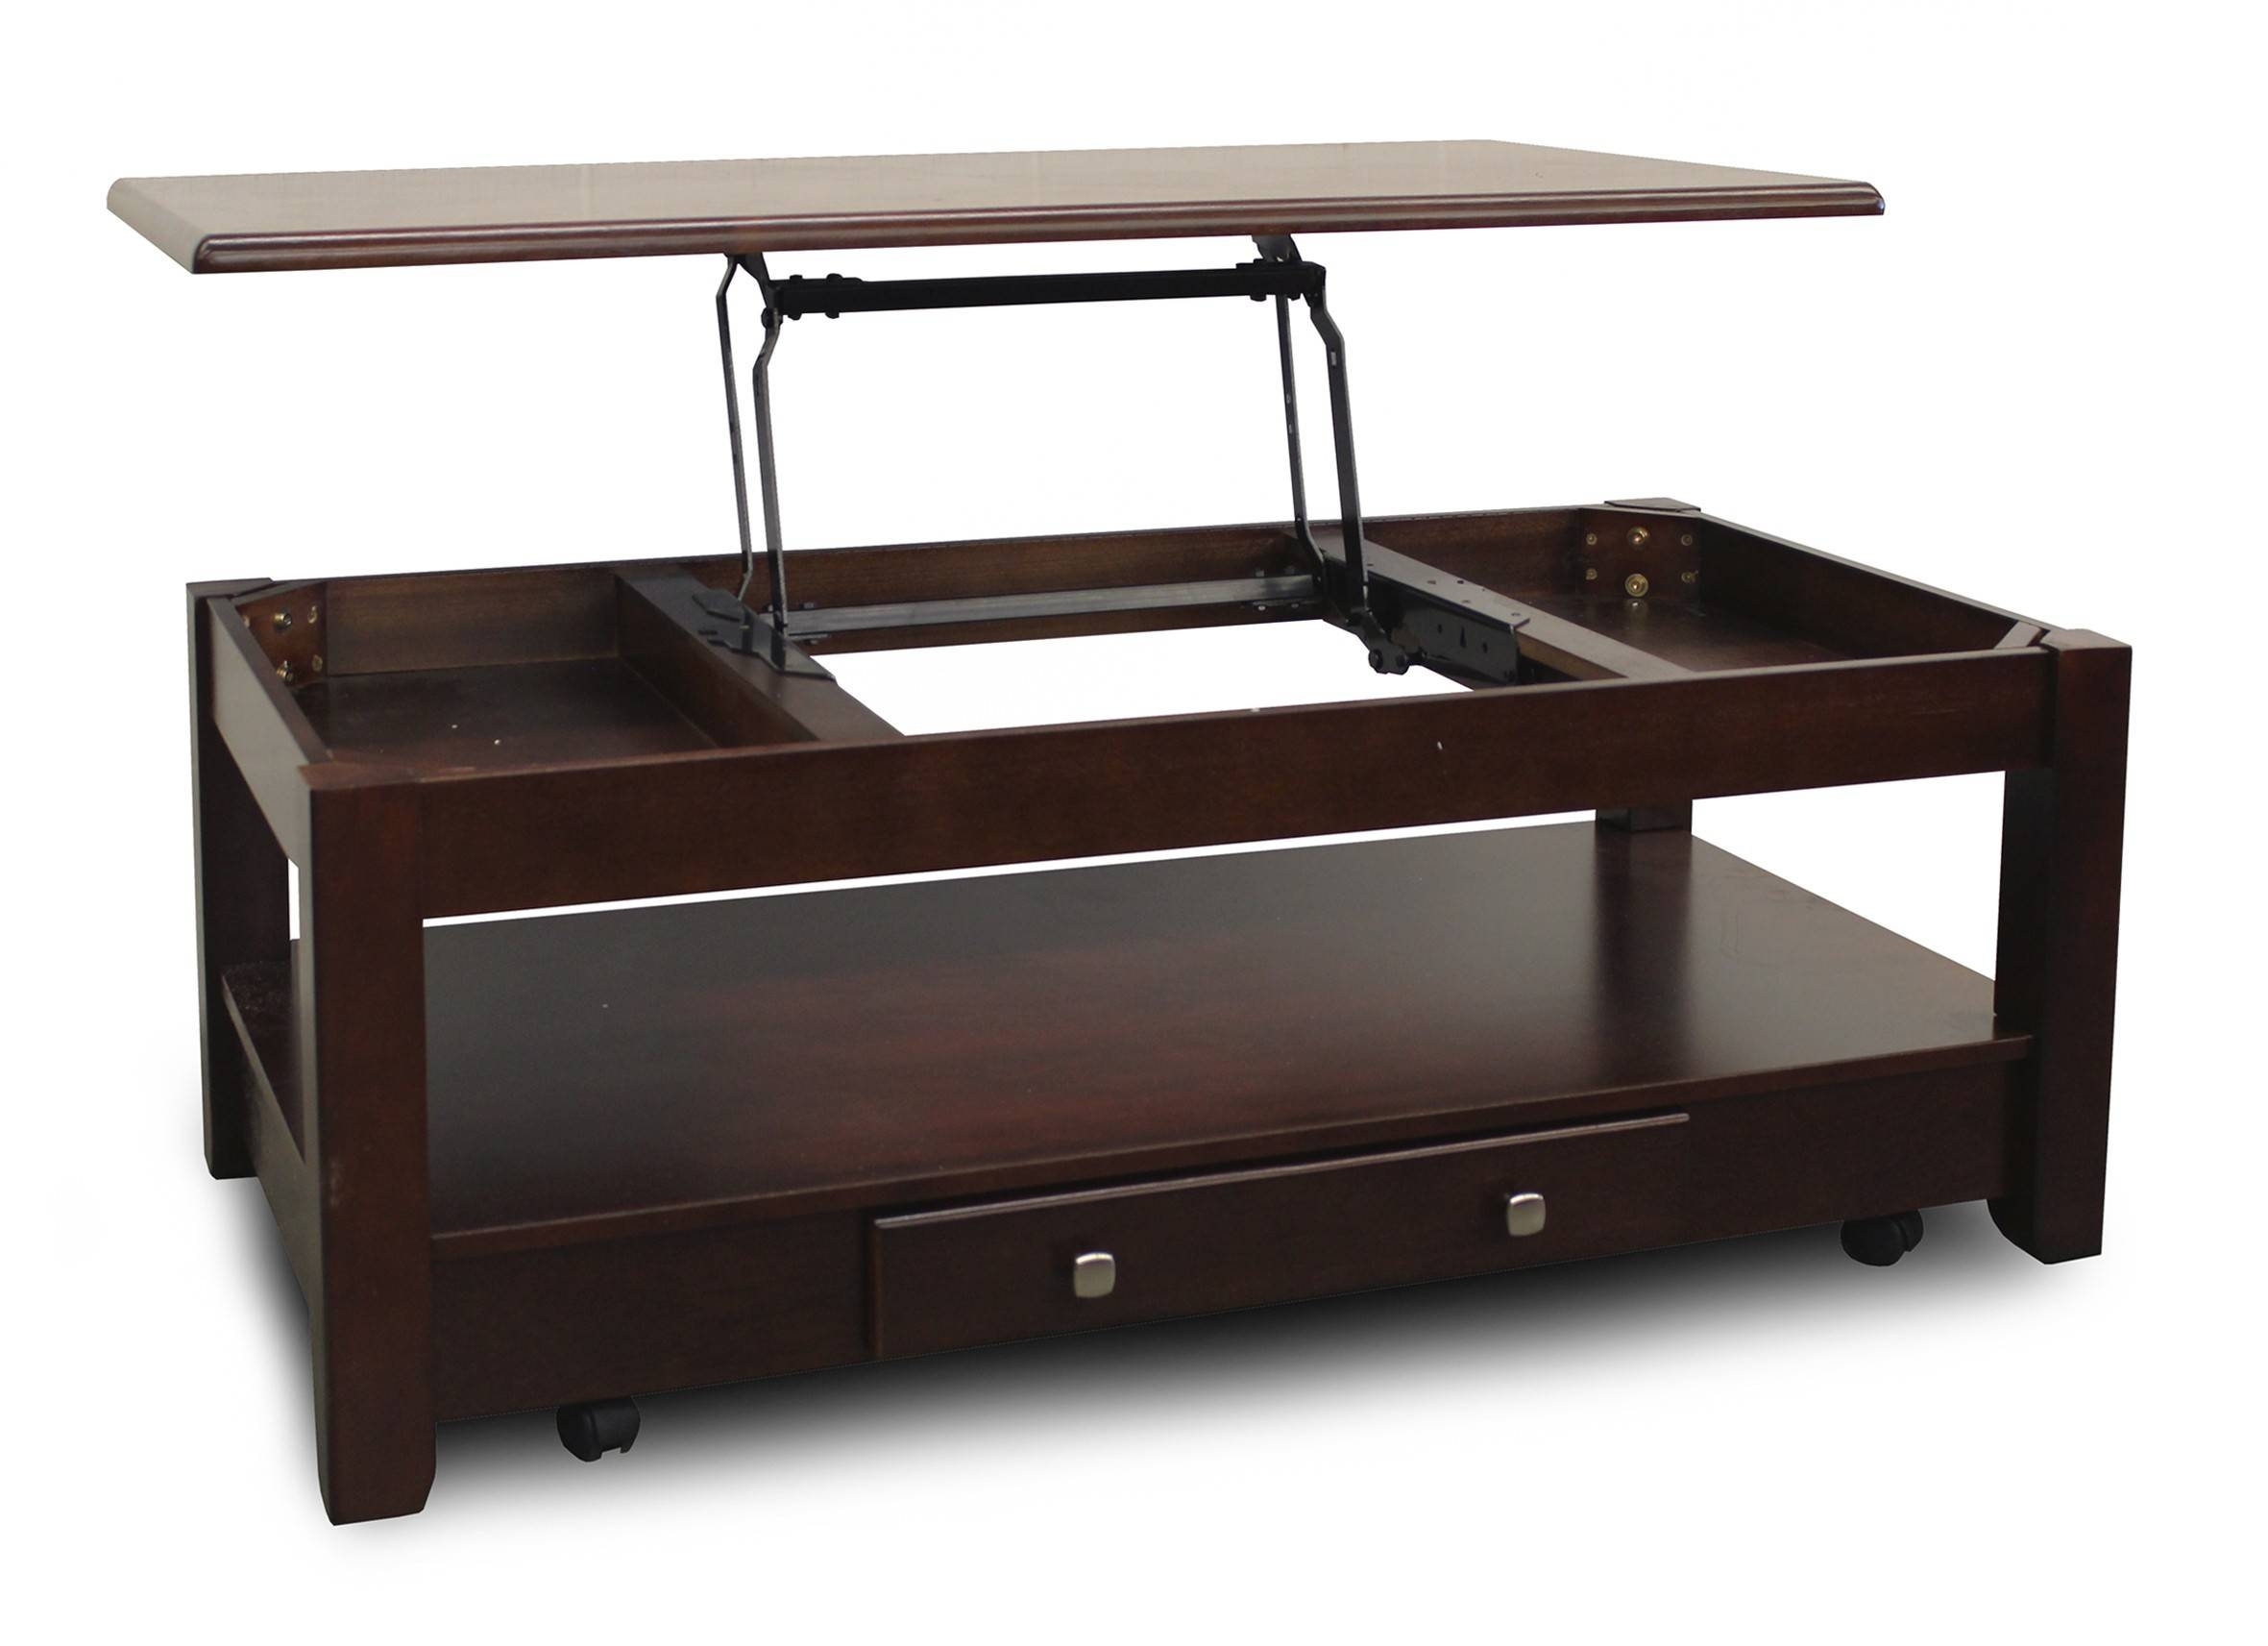 Dark Brown Wooden Table With Single Drawer On The Bottom Plus in Coffee Tables With Shelves (Image 14 of 30)